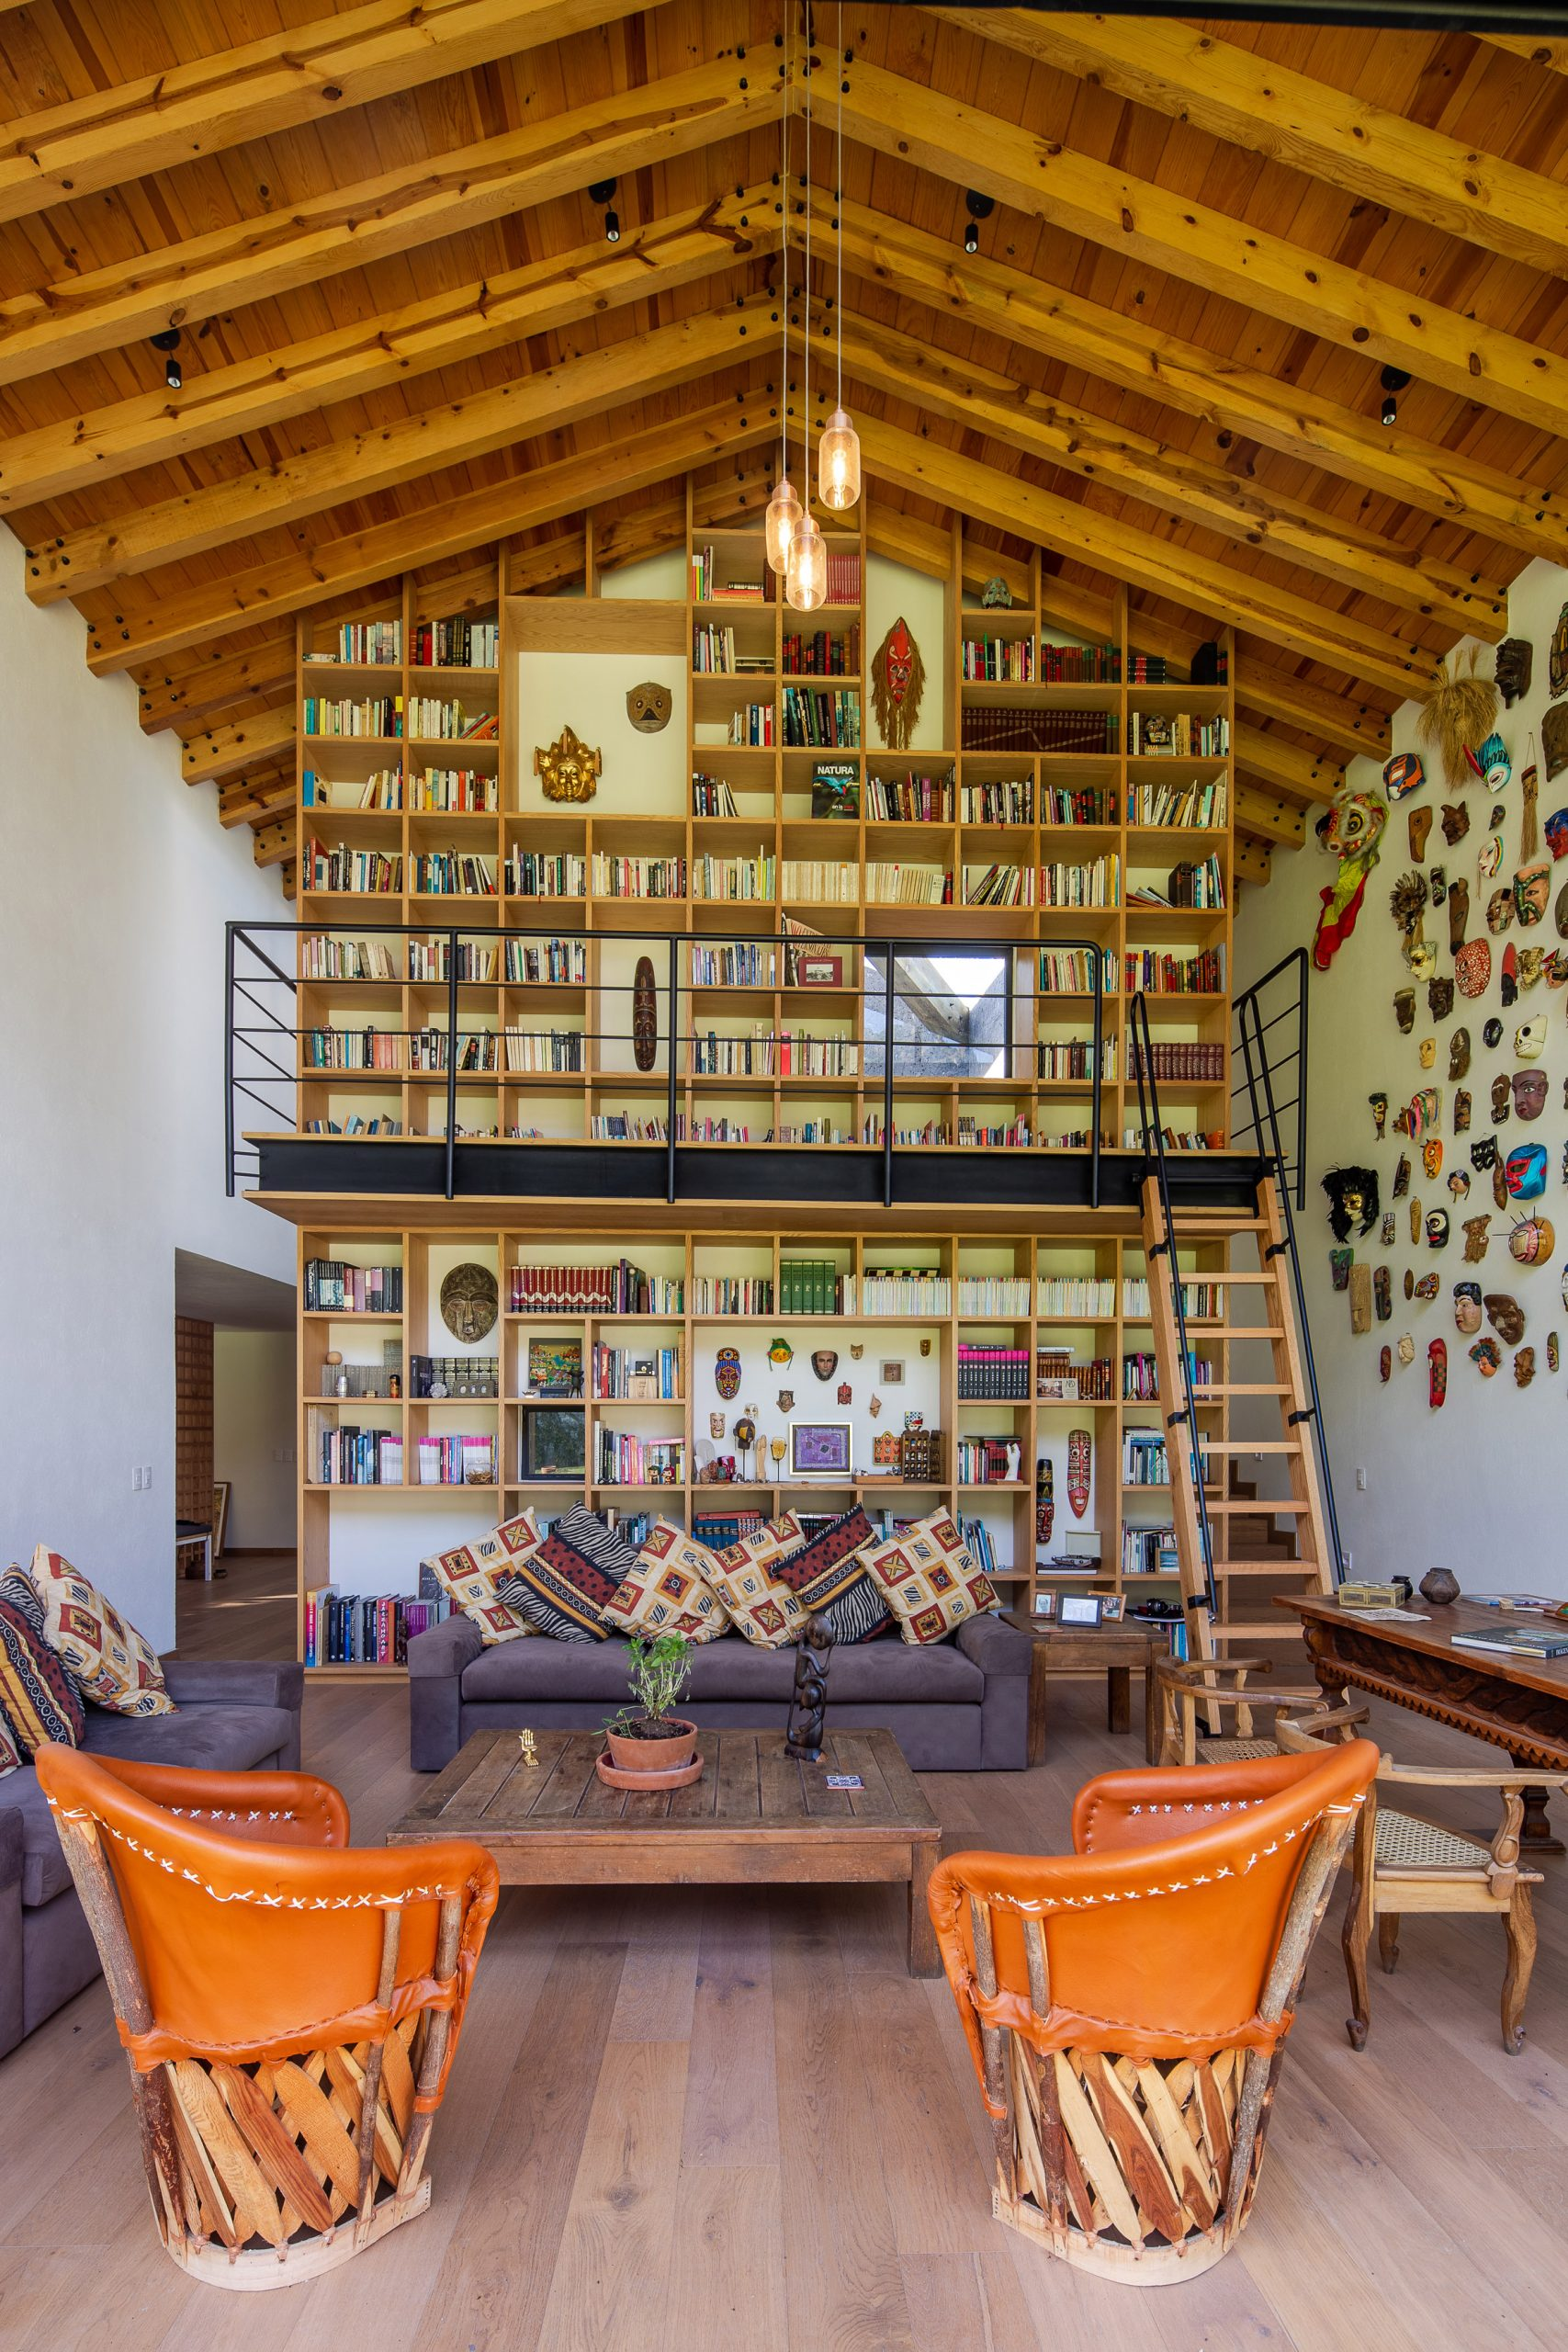 The bookcase also showcases Casa Texcal's mask collection